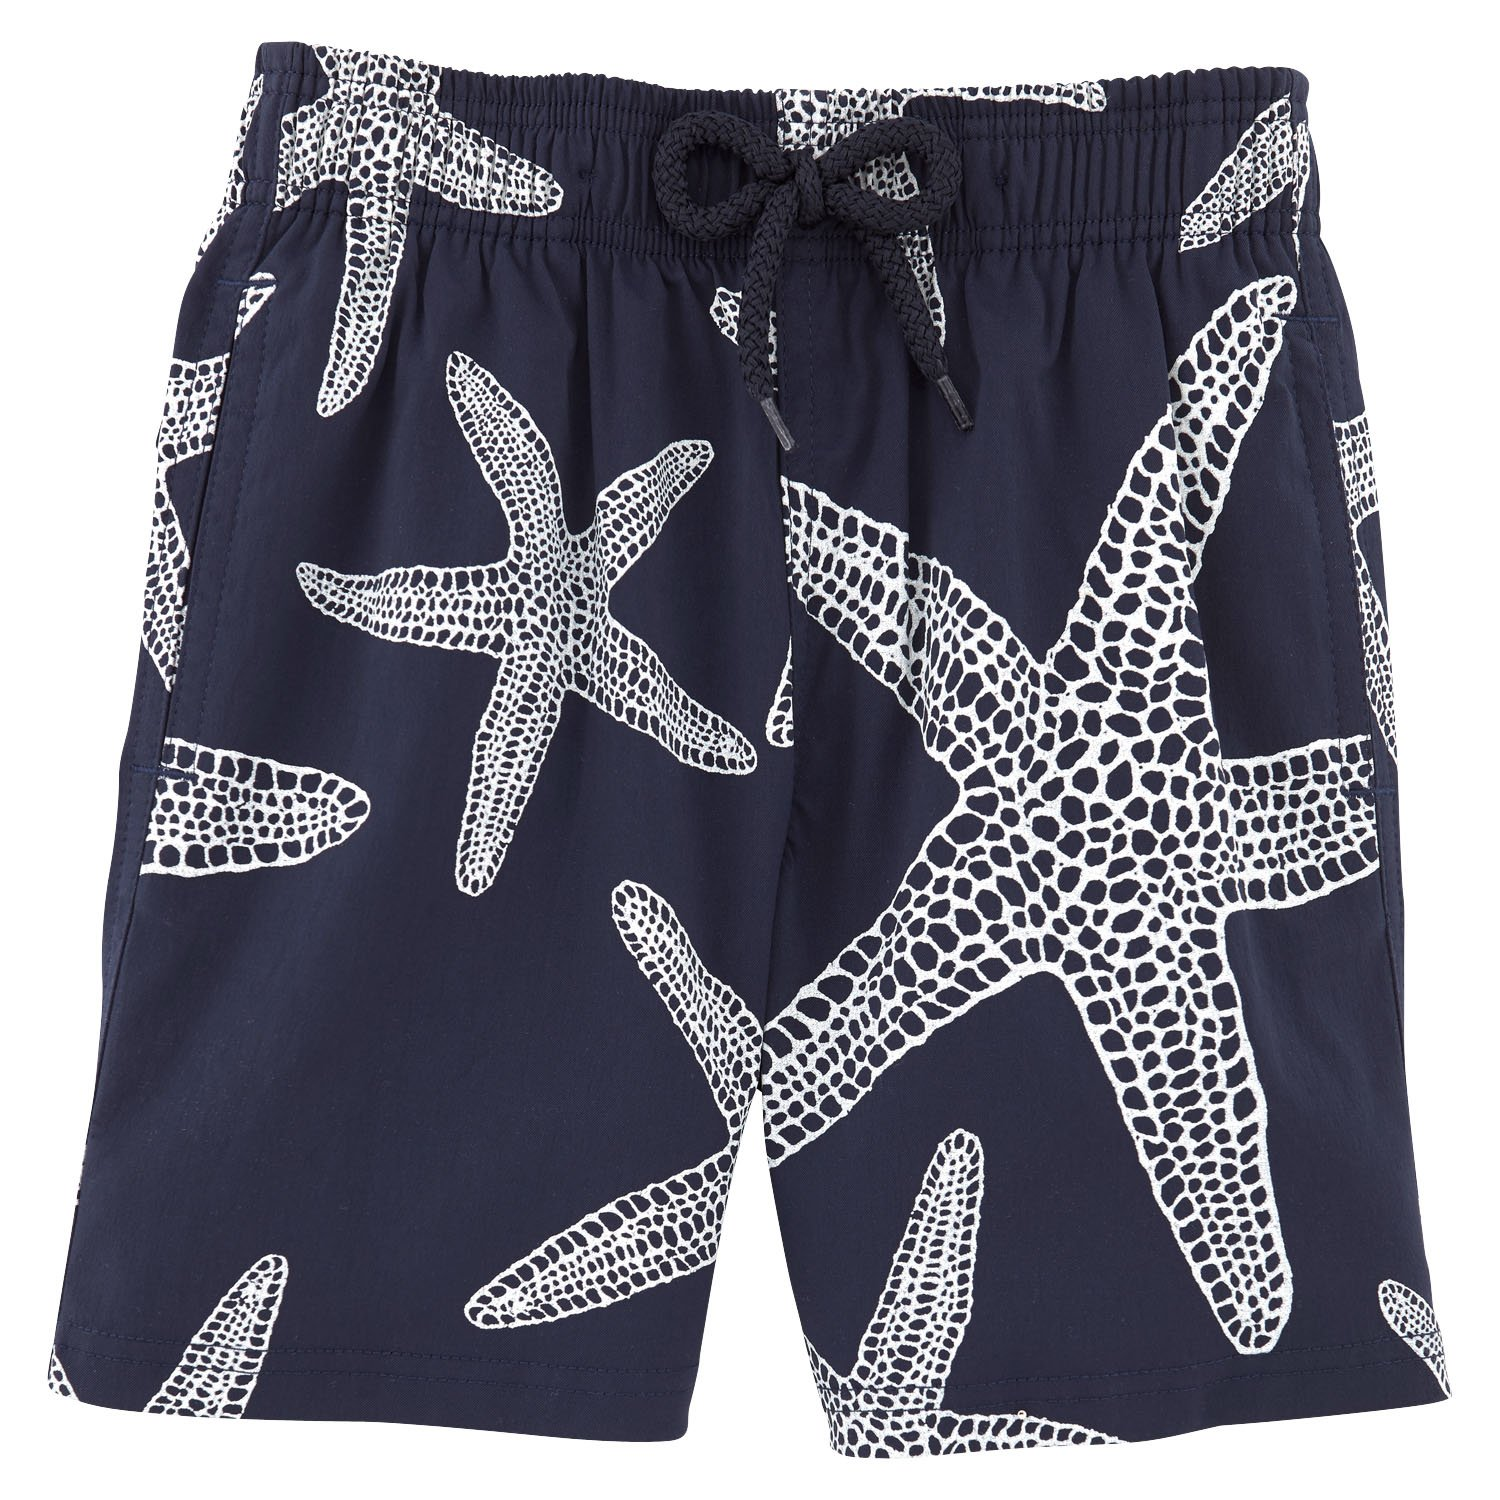 Vilebrequin Starlette Glow in The Dark Superflex Swim Shorts - Boys - Navy - 6